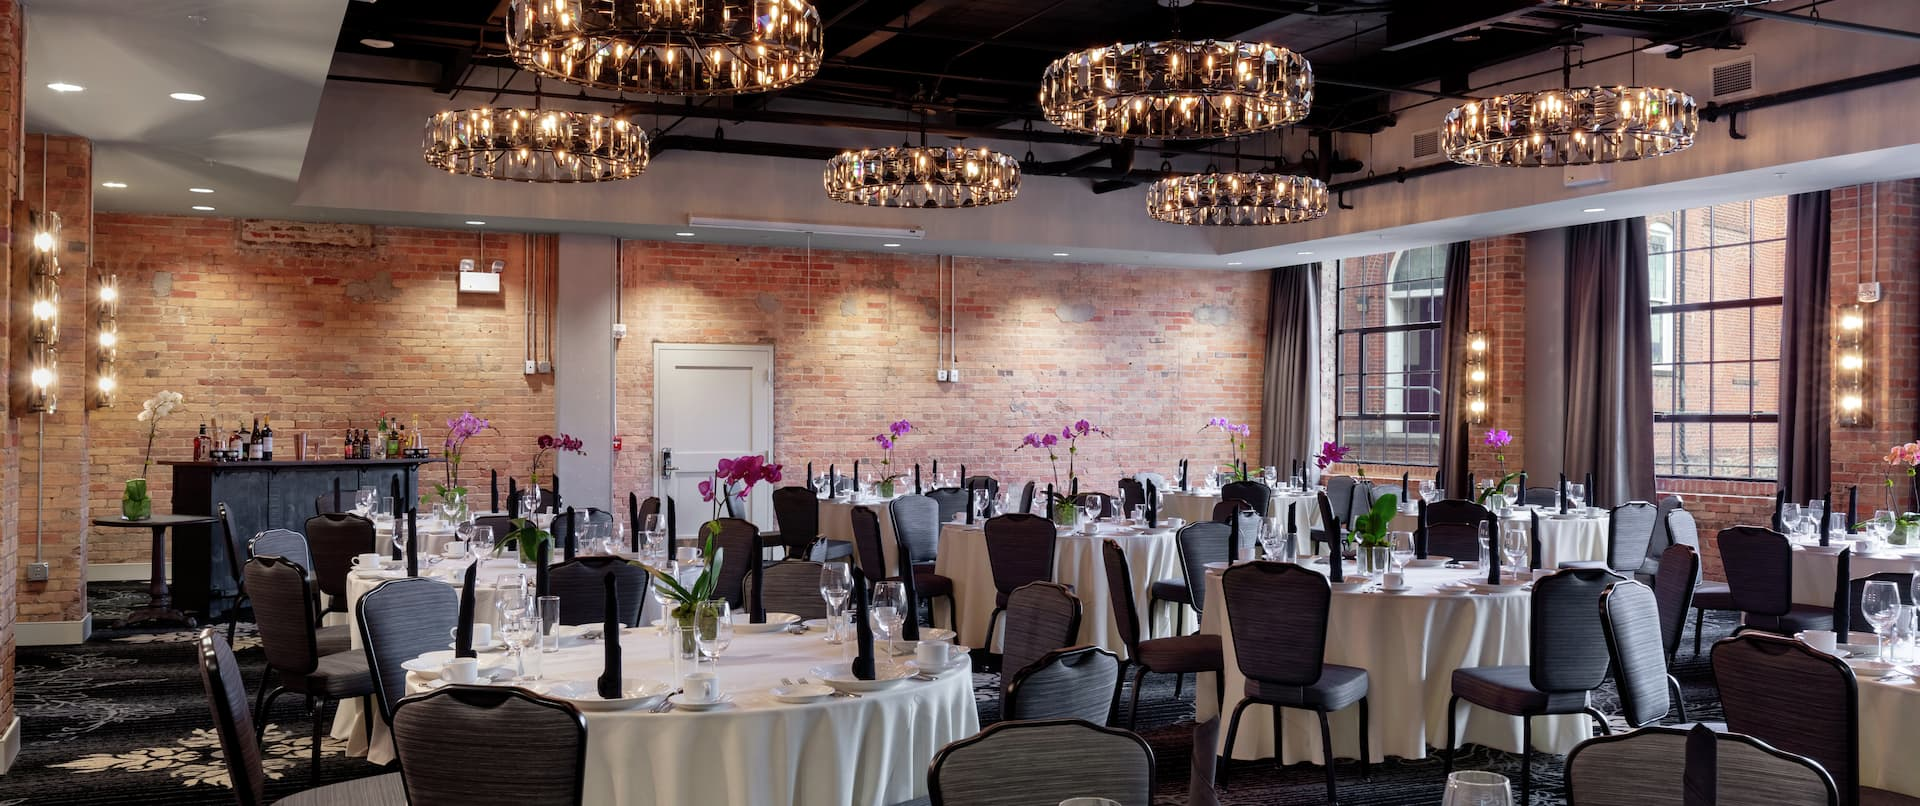 Elegant Ballroom with Dining Space